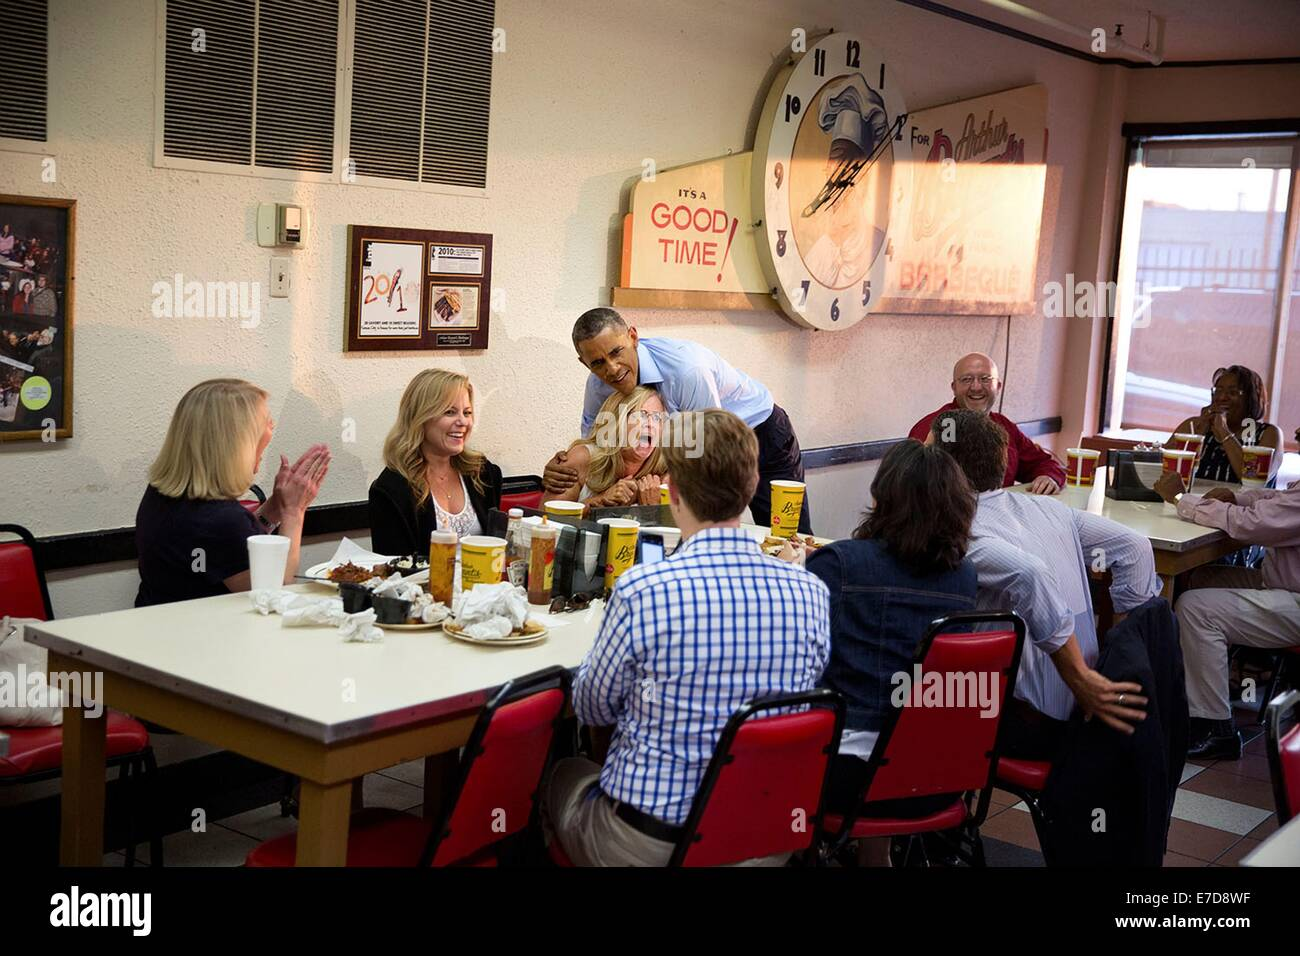 US President Barack Obama jokes with restaurant patrons at Arthur Bryant's Barbecue July 29, 2014 in Kansas - Stock Image